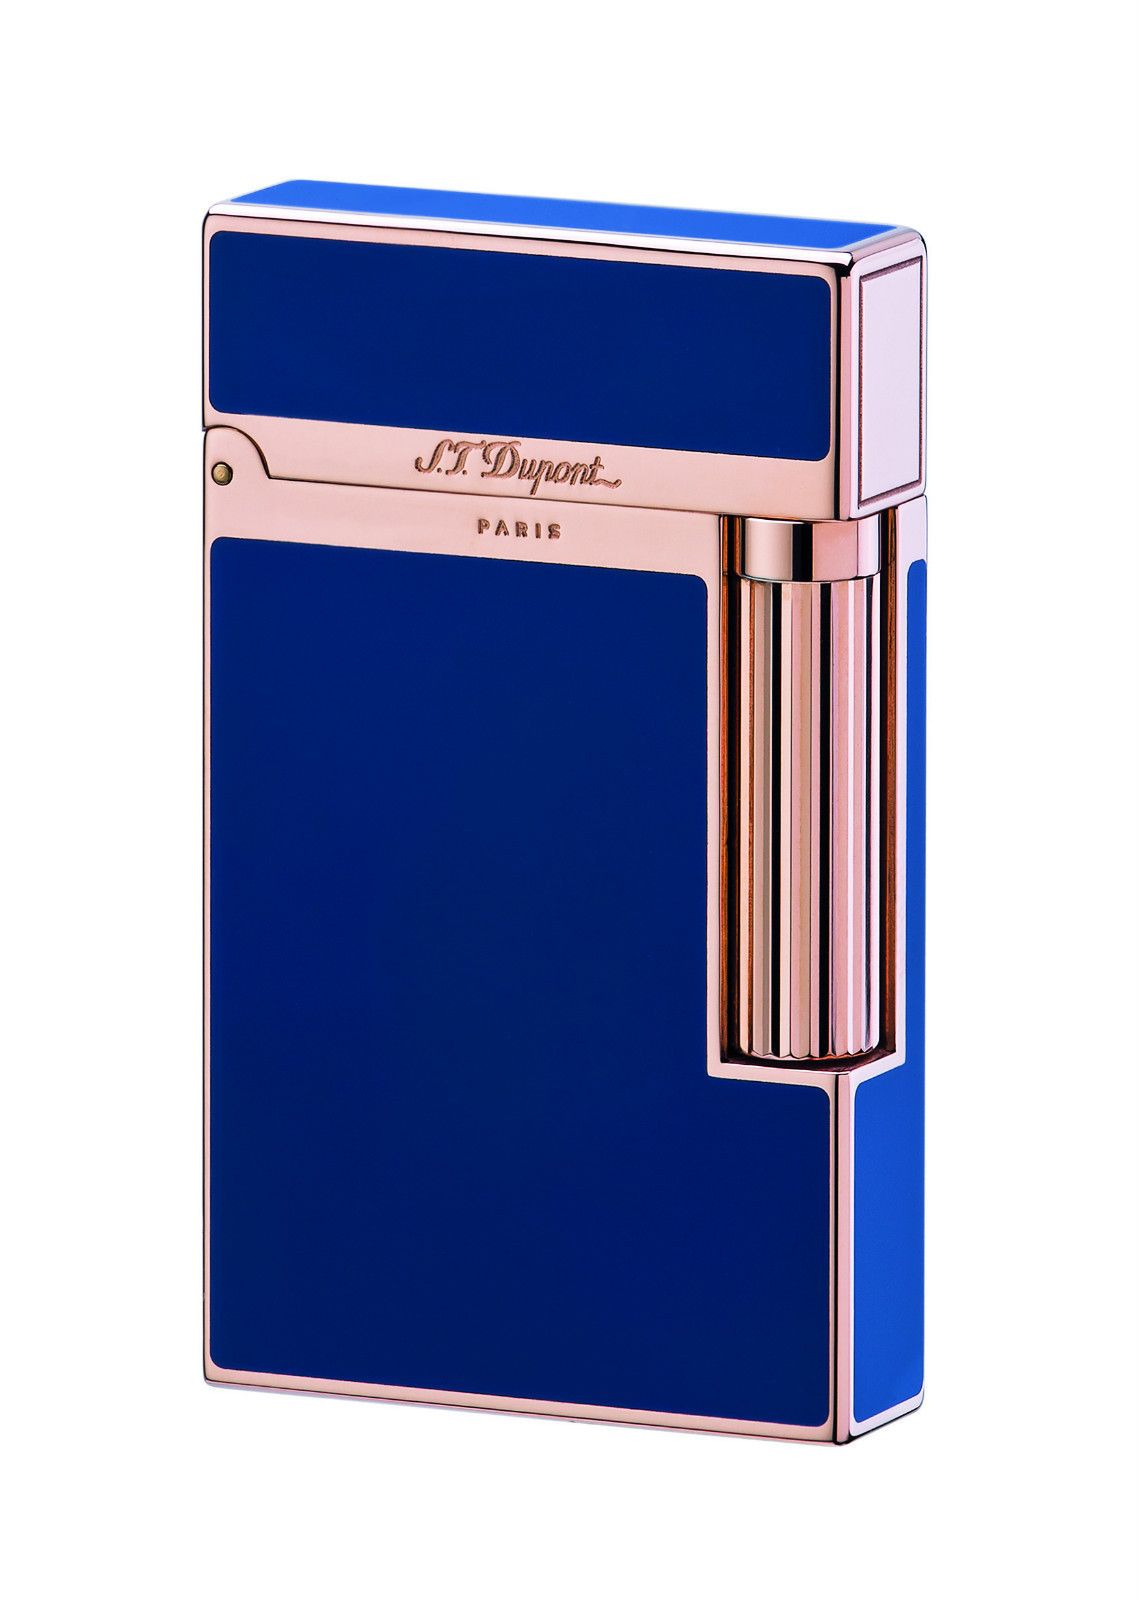 df386e4d10d5 S.T. Dupont Ligne 2 Lighter - Model    016496 - Blue Chinese Lacquer - Pink  Gold Finish